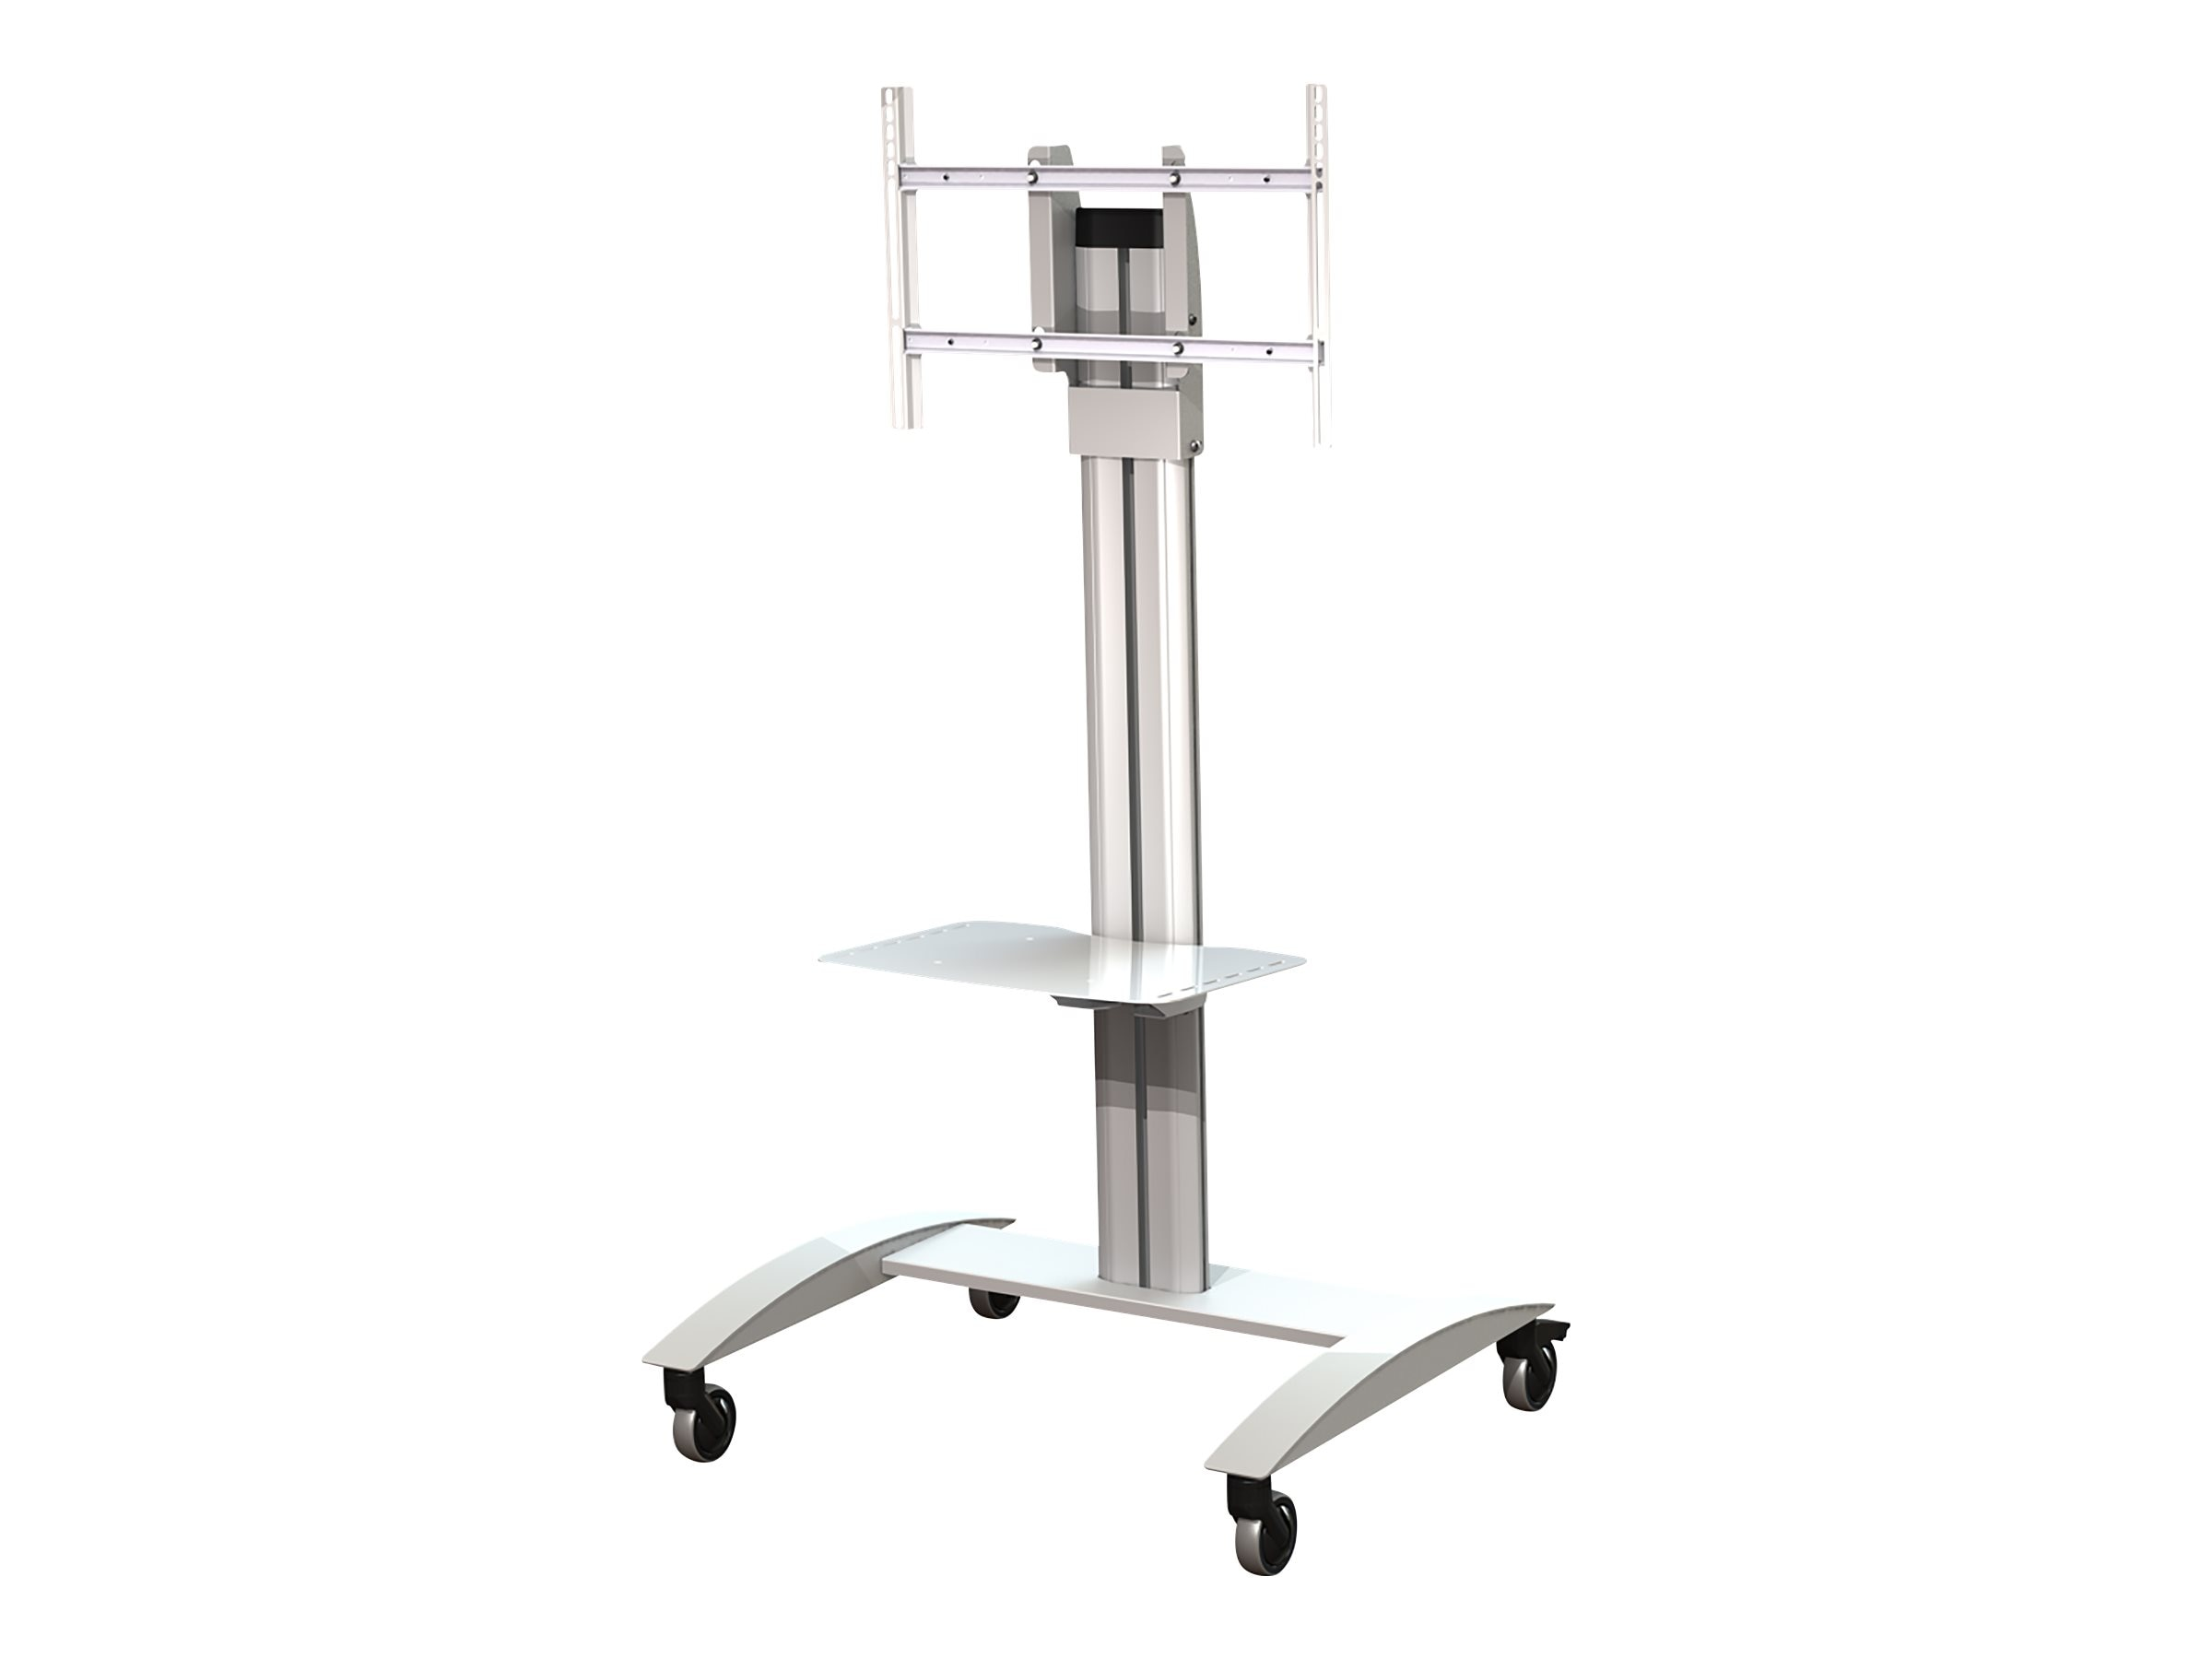 Peerless Cart with Metal Shelf, SR560M-AW, 13419214, Stands & Mounts - AV